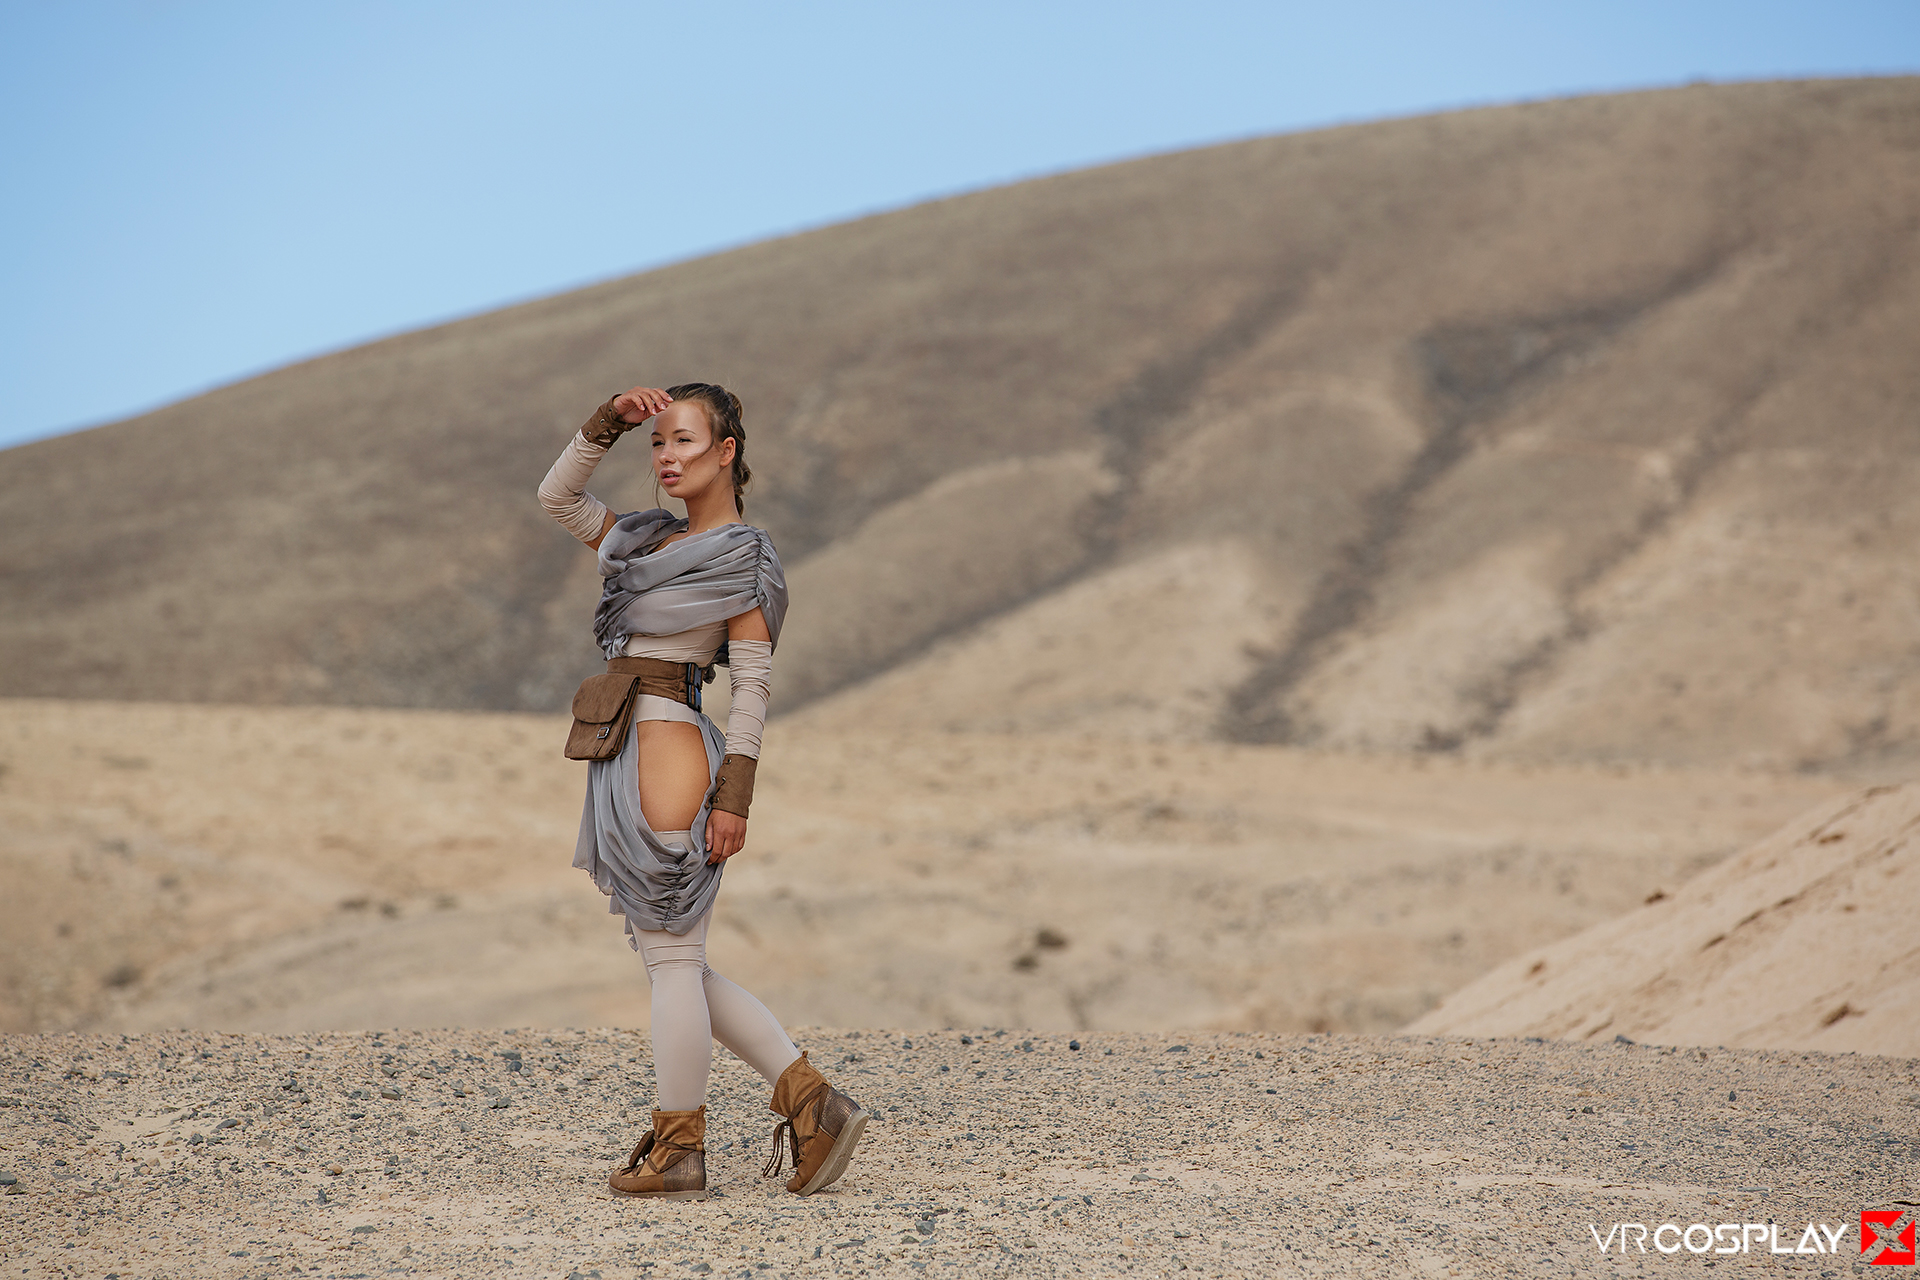 Star Wars Vr Porn Cosplay Starring Taylor Sands As Rey -1781